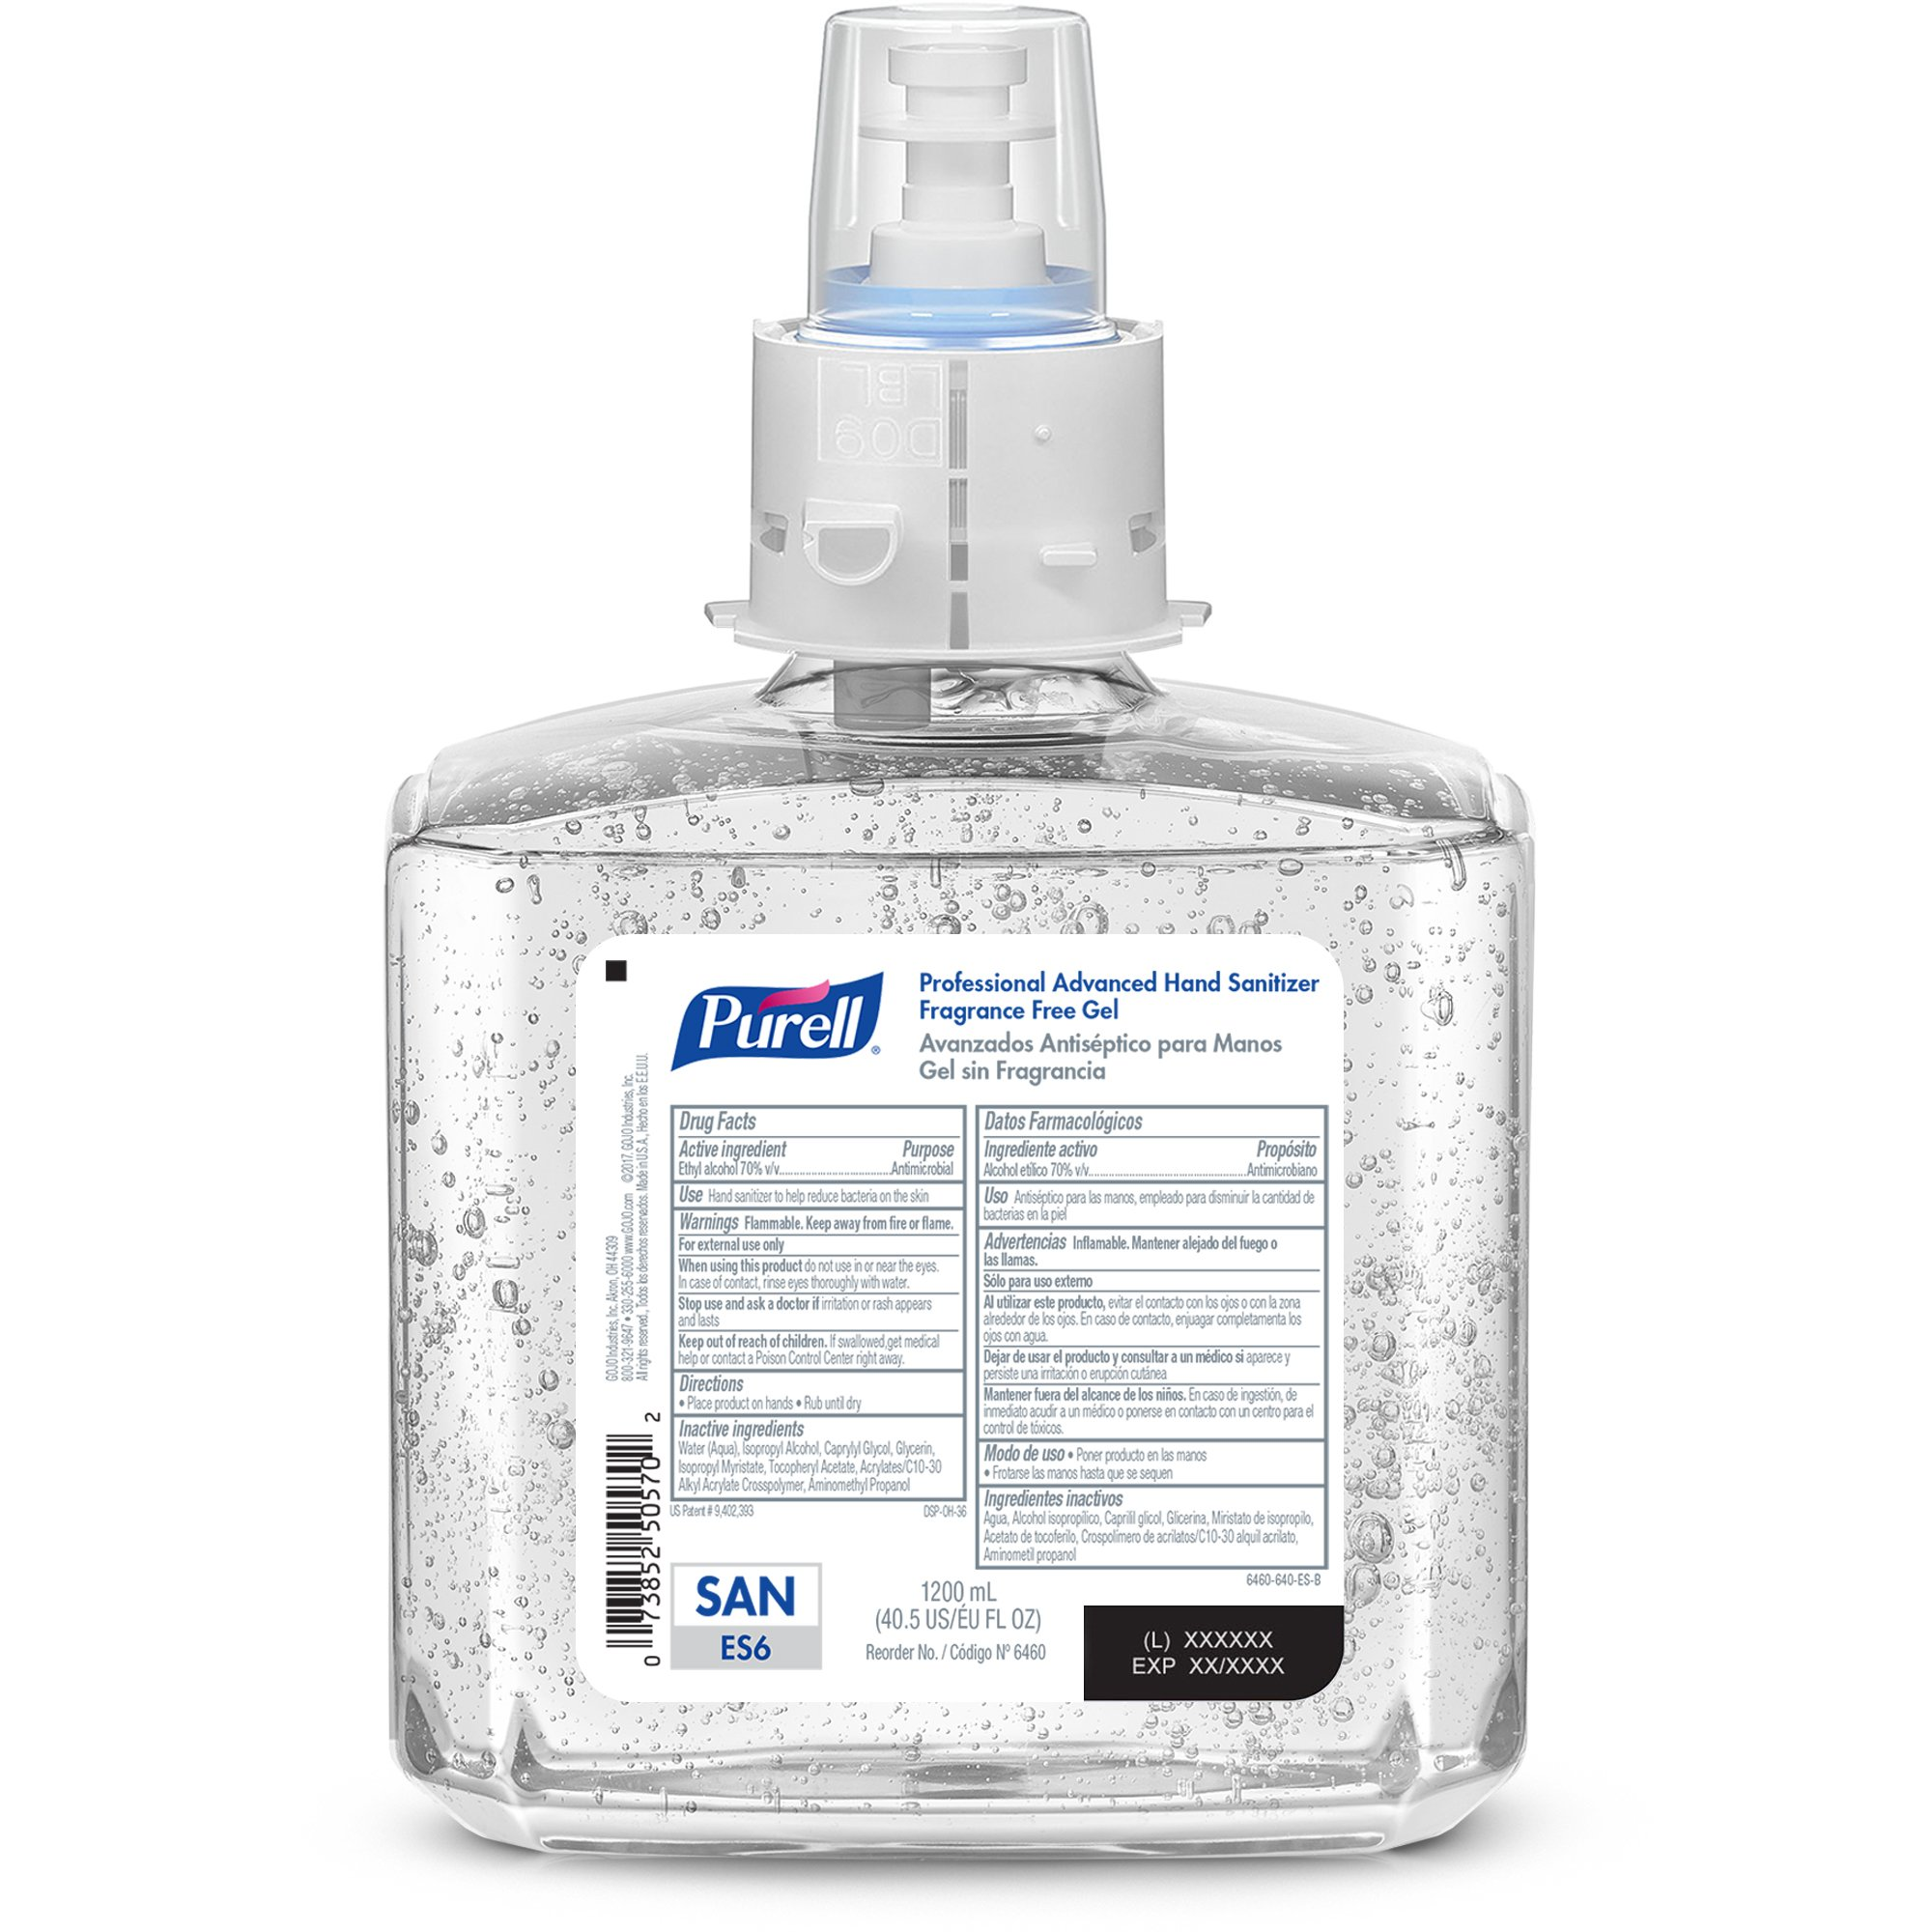 PURELL ES6 Professional Advanced Hand Sanitizer Gel Refill, Fragrance Free, 1200 mL Sanitizer Refill for PURELL ES6 Touch-Free Dispenser (Pack of 2) -  6460-02 by Purell (Image #2)